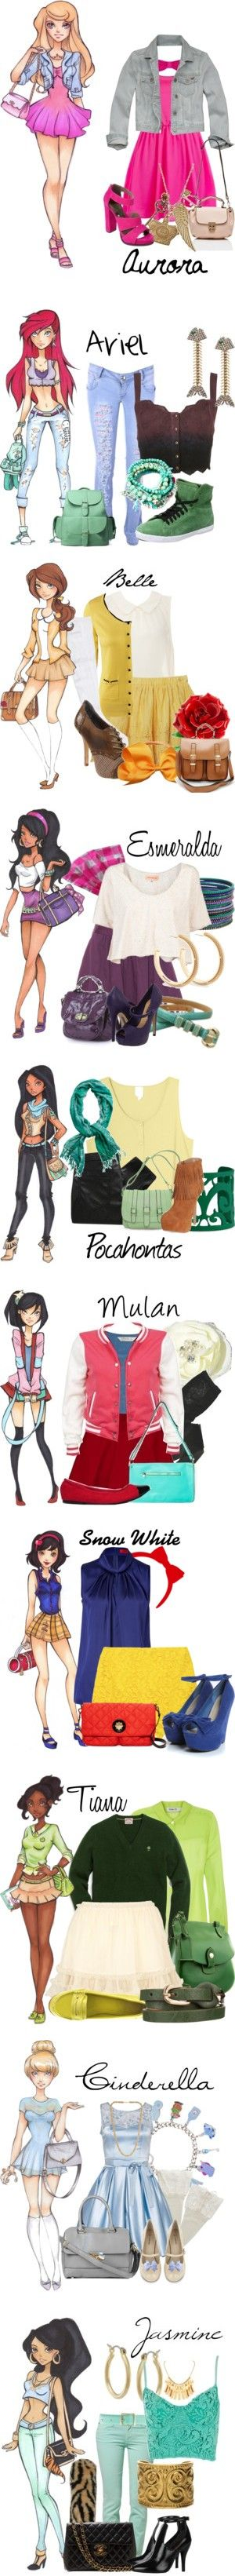 """Disney High"" by disneykid95 on Polyvore                                                                                                                                                                                 More"